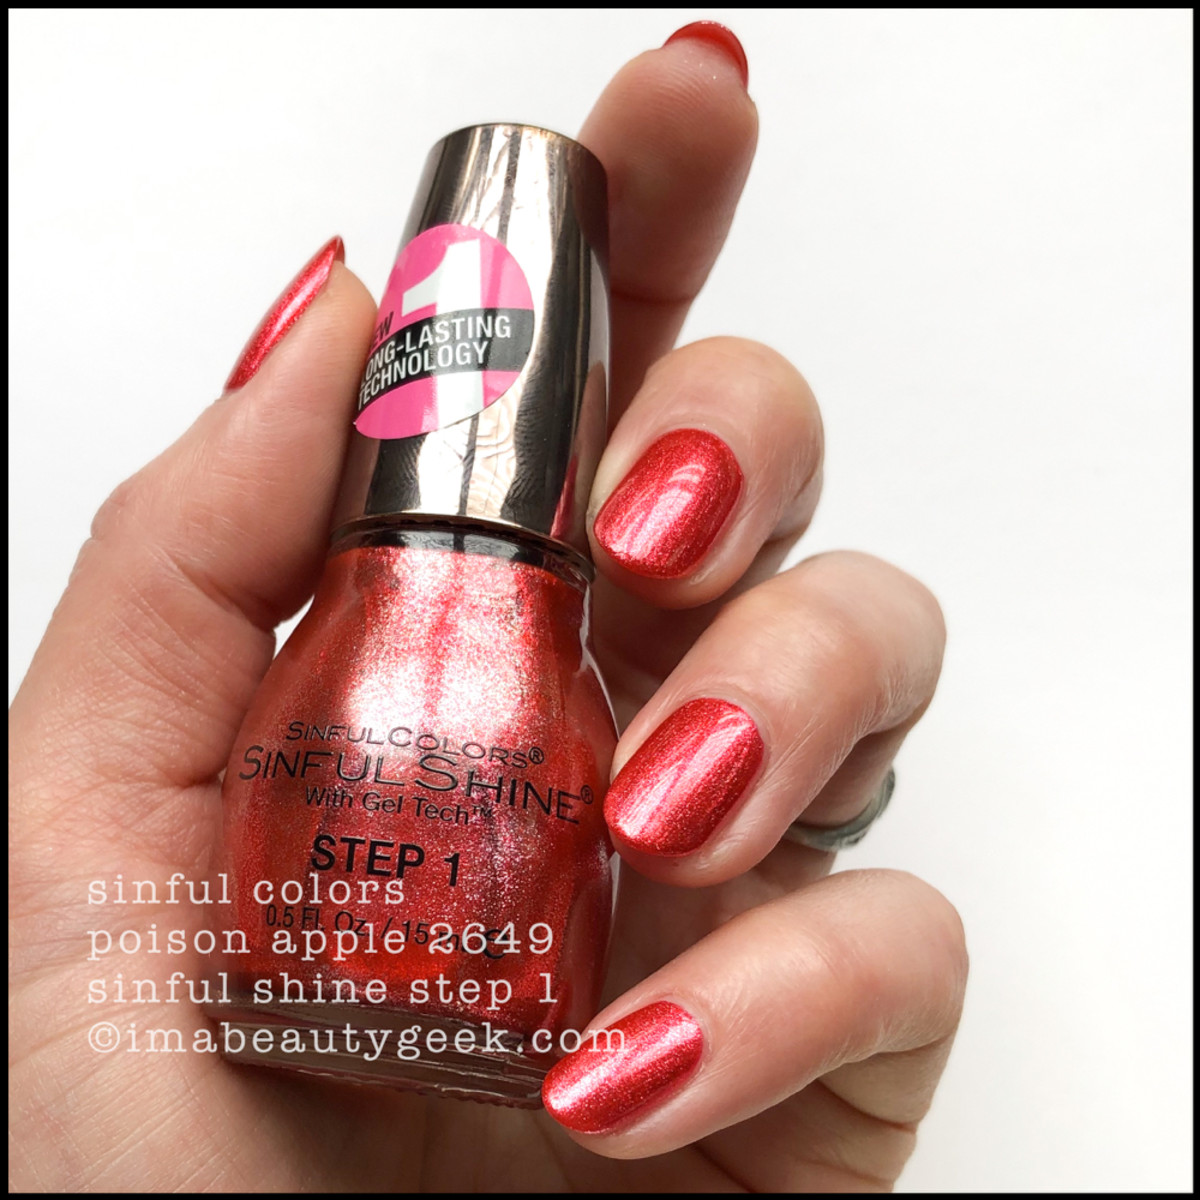 Sinful Colors Poison Apple - Sinful Colors Swatches Sinful Shine 2019